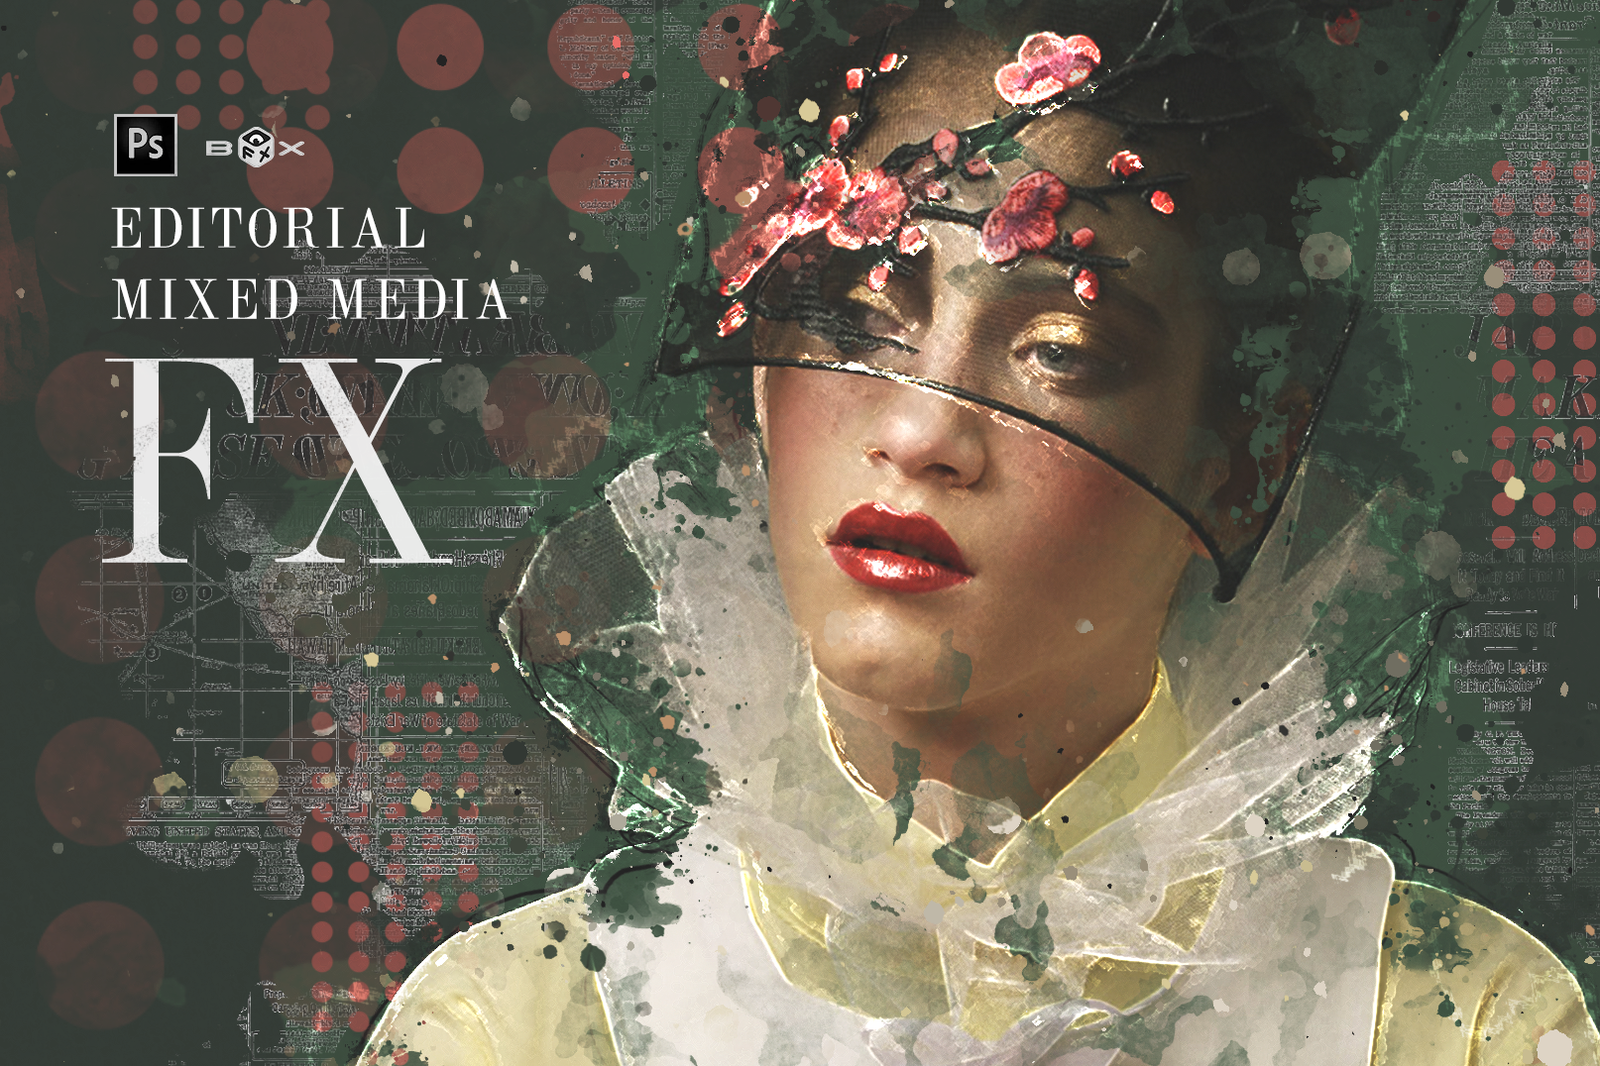 Editorial Mixed Media FX - Photoshop Add-On Extension